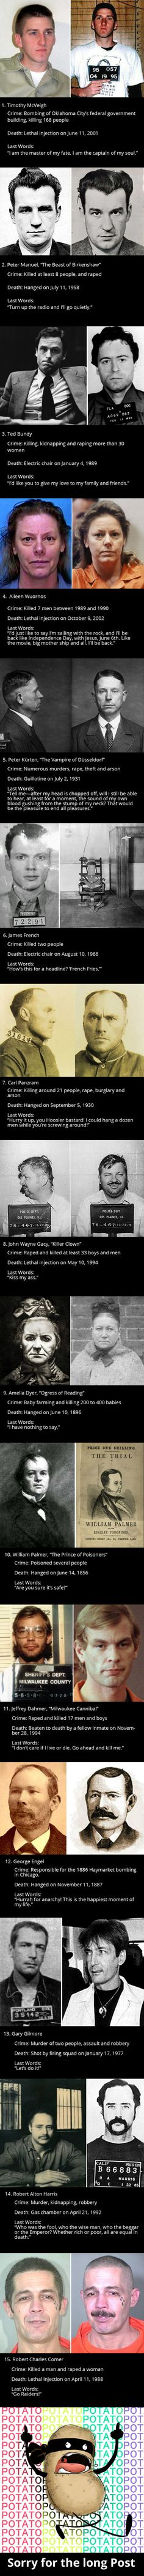 Here's an Infamous Criminals and Their Last Words Before Execution, What's yours?